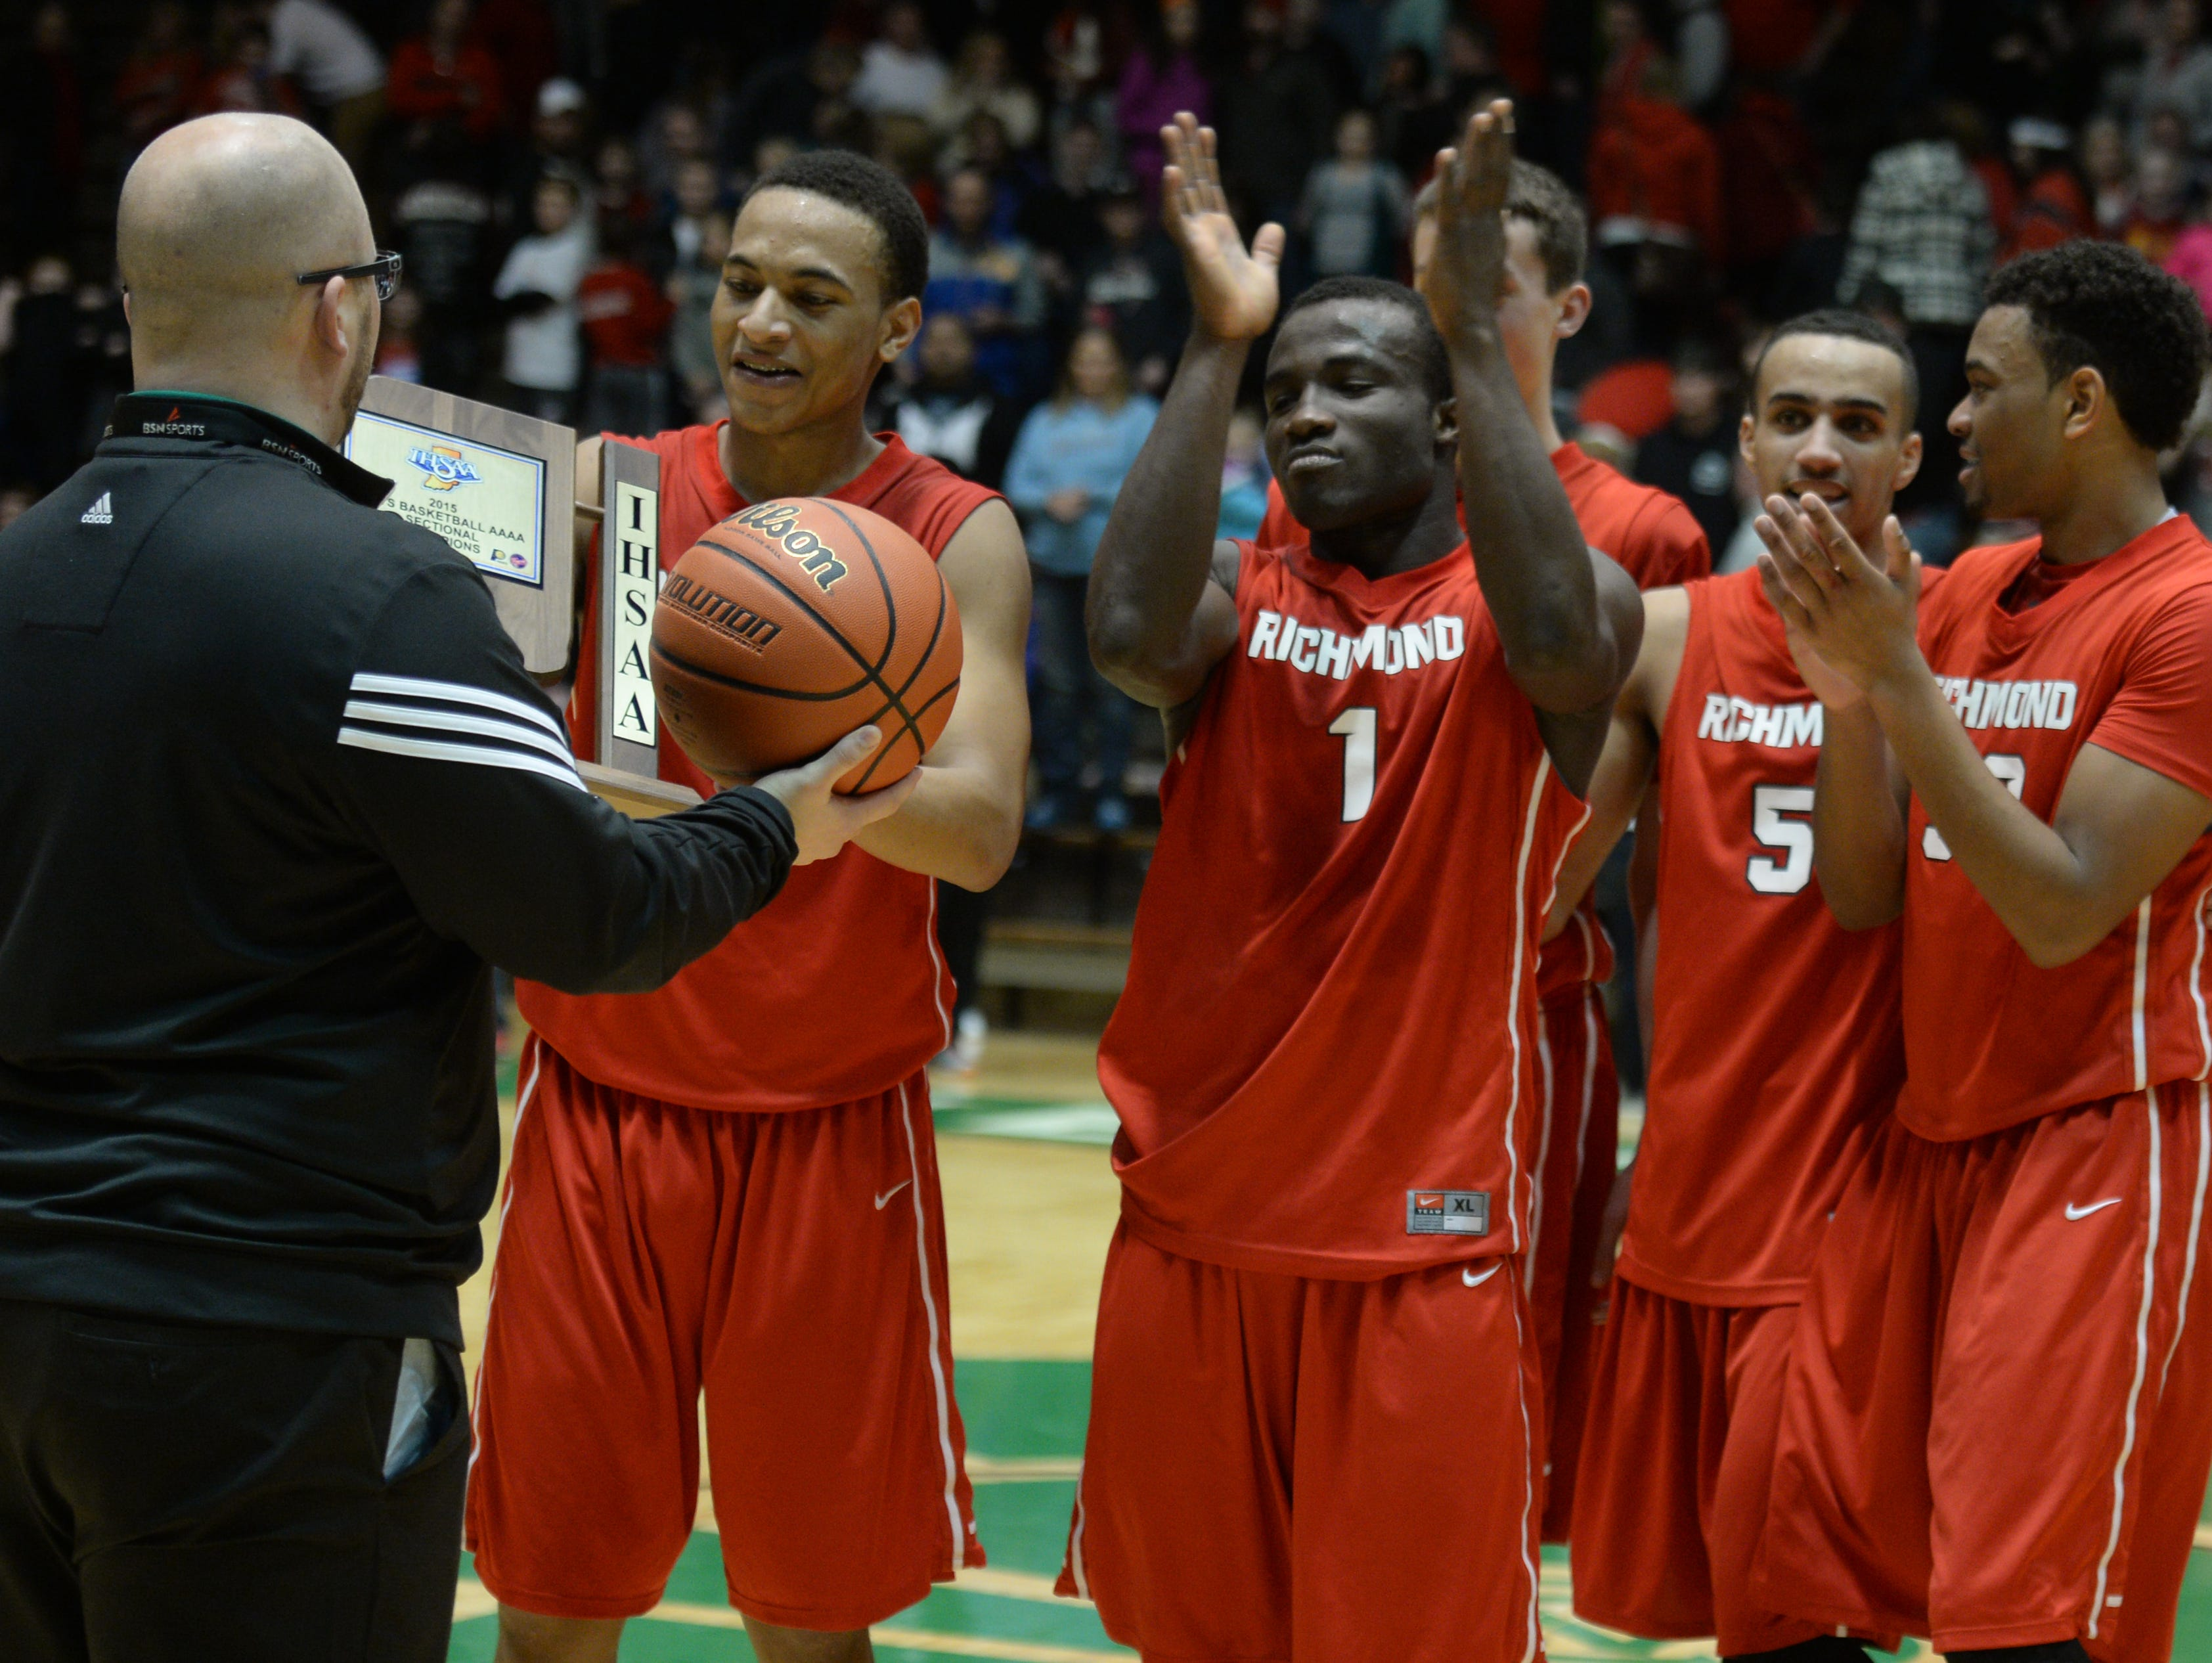 New Castle High School athletic director Brandon Ecker presents a game ball and sectional championship trophy to Richmond's Davious Webster, Joel OKafor, Bryce Austin, Isaiah Rader, Auntonio Brown and Tre Sanders after the Class 4A sectional basketball championship game March 7 in New Castle.